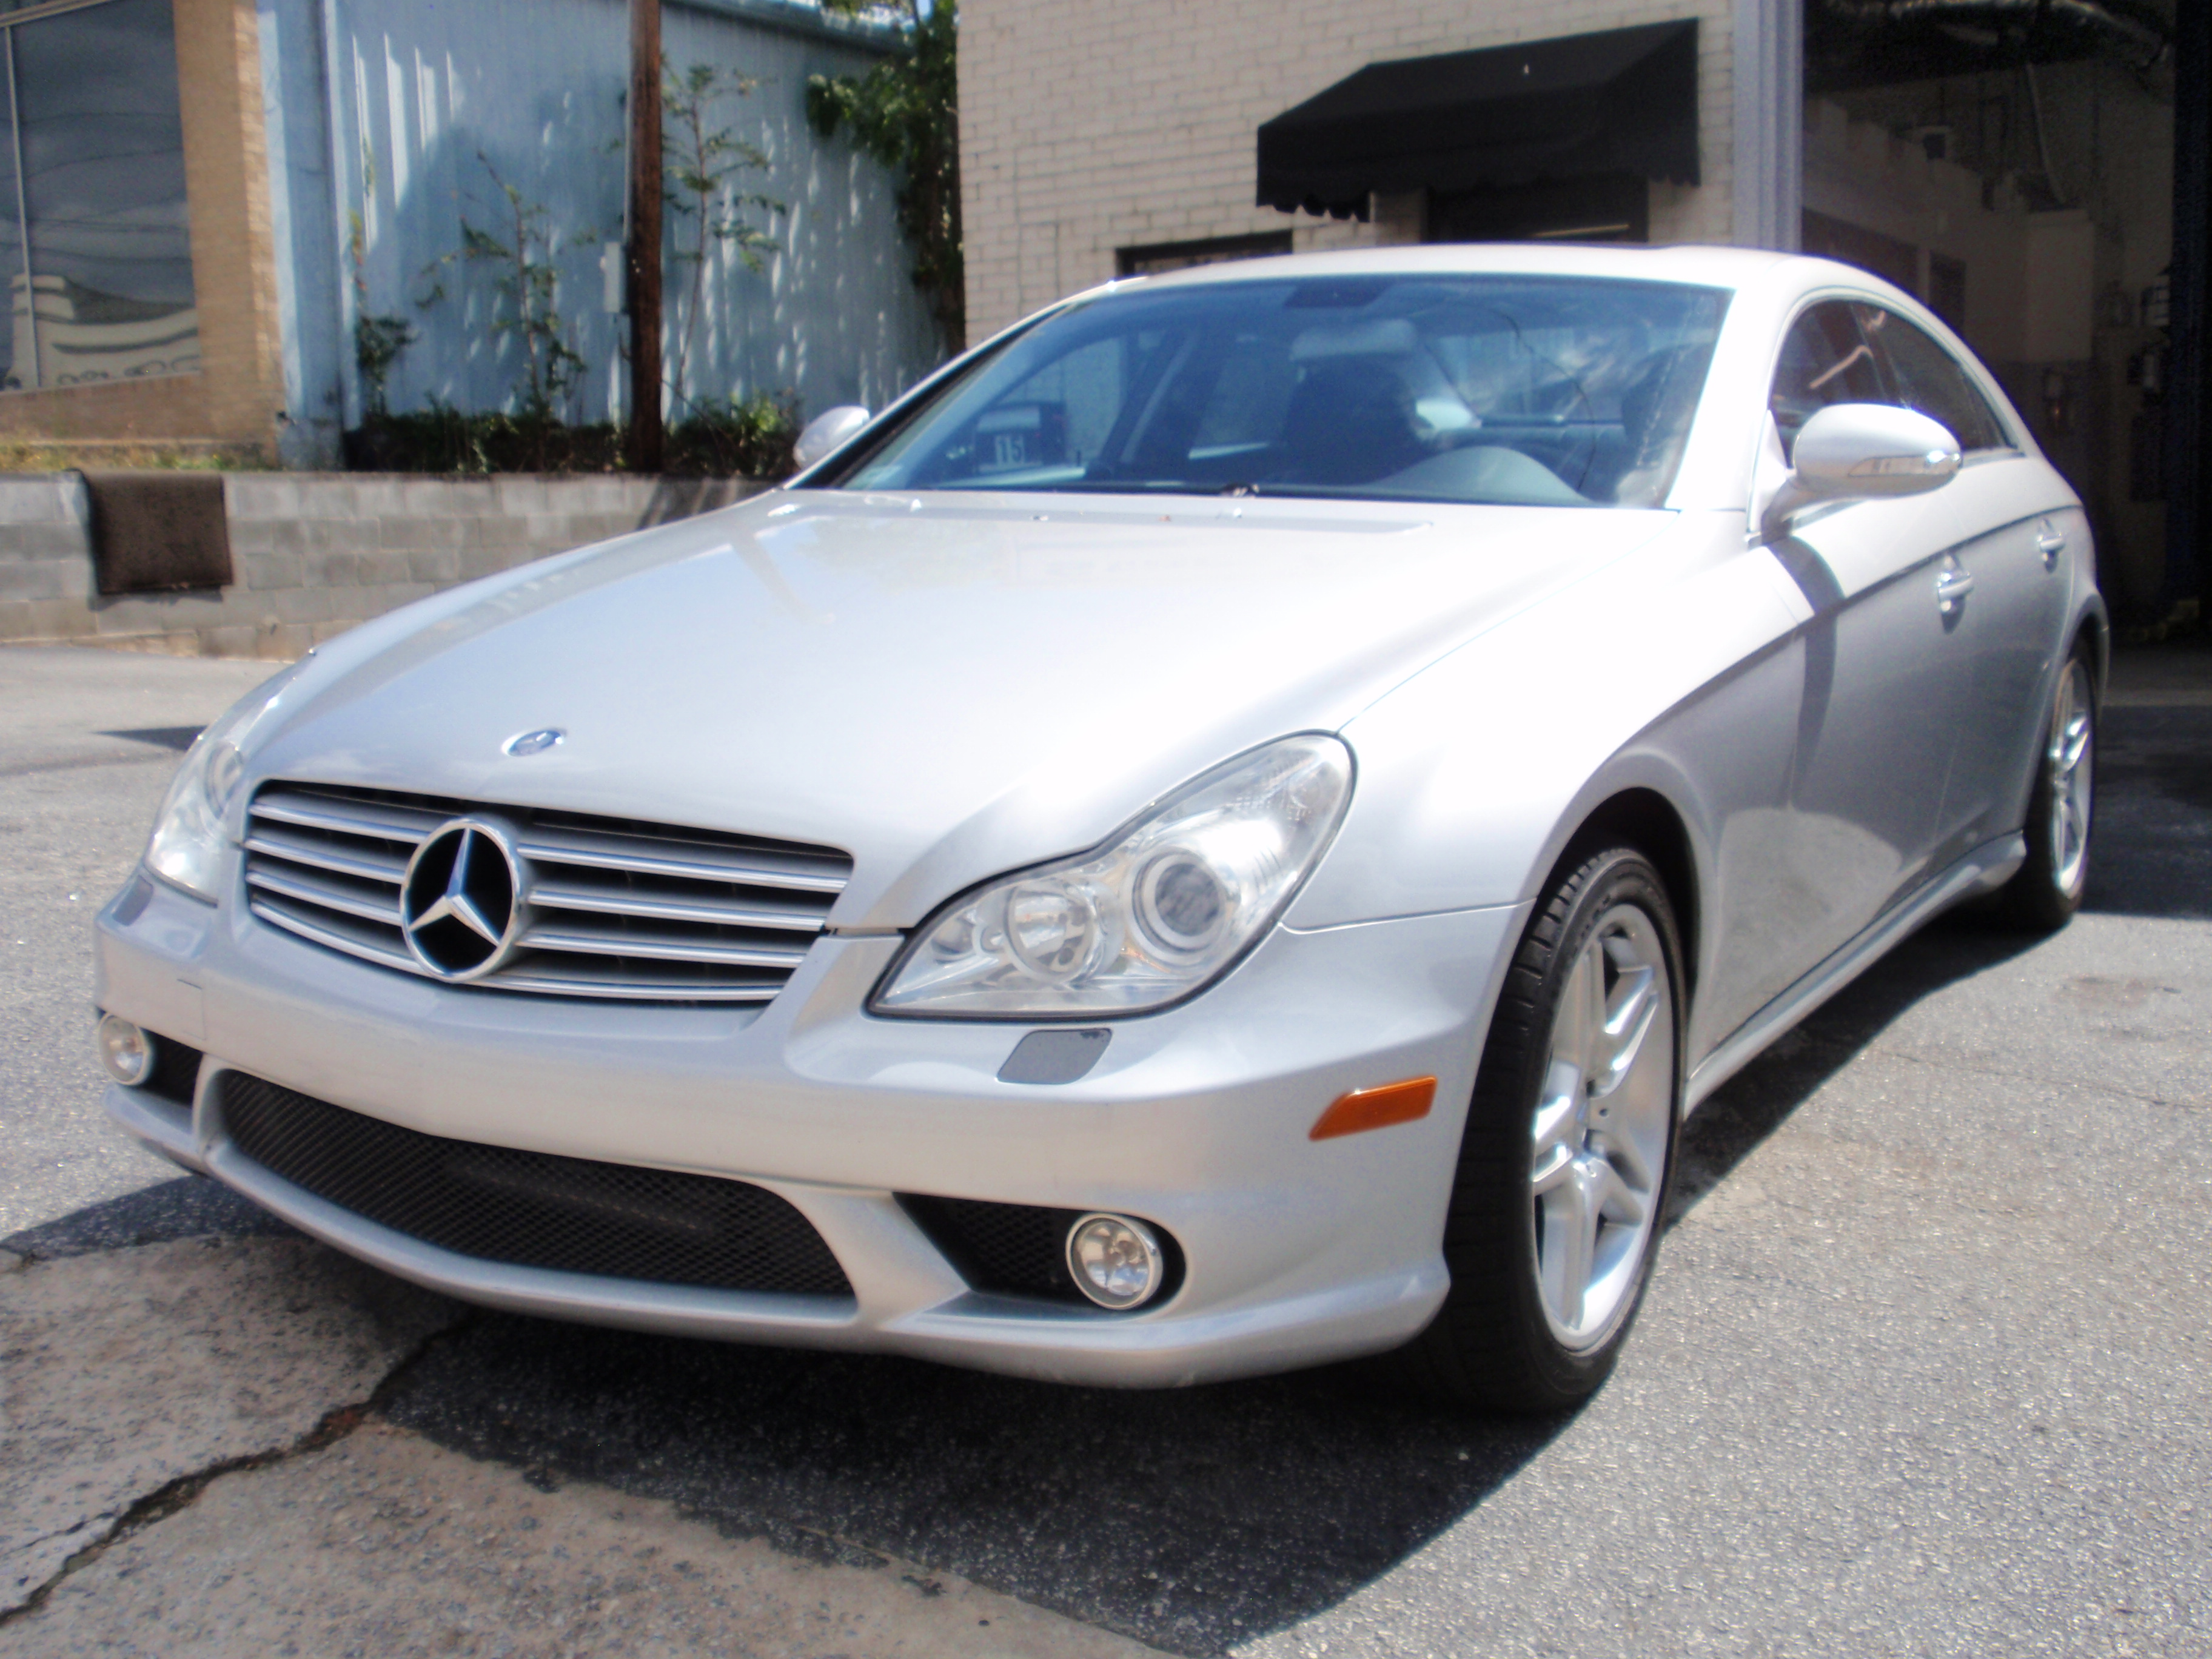 2008 mercedes benz cls 500 silver with black interior for Mercedes benz care